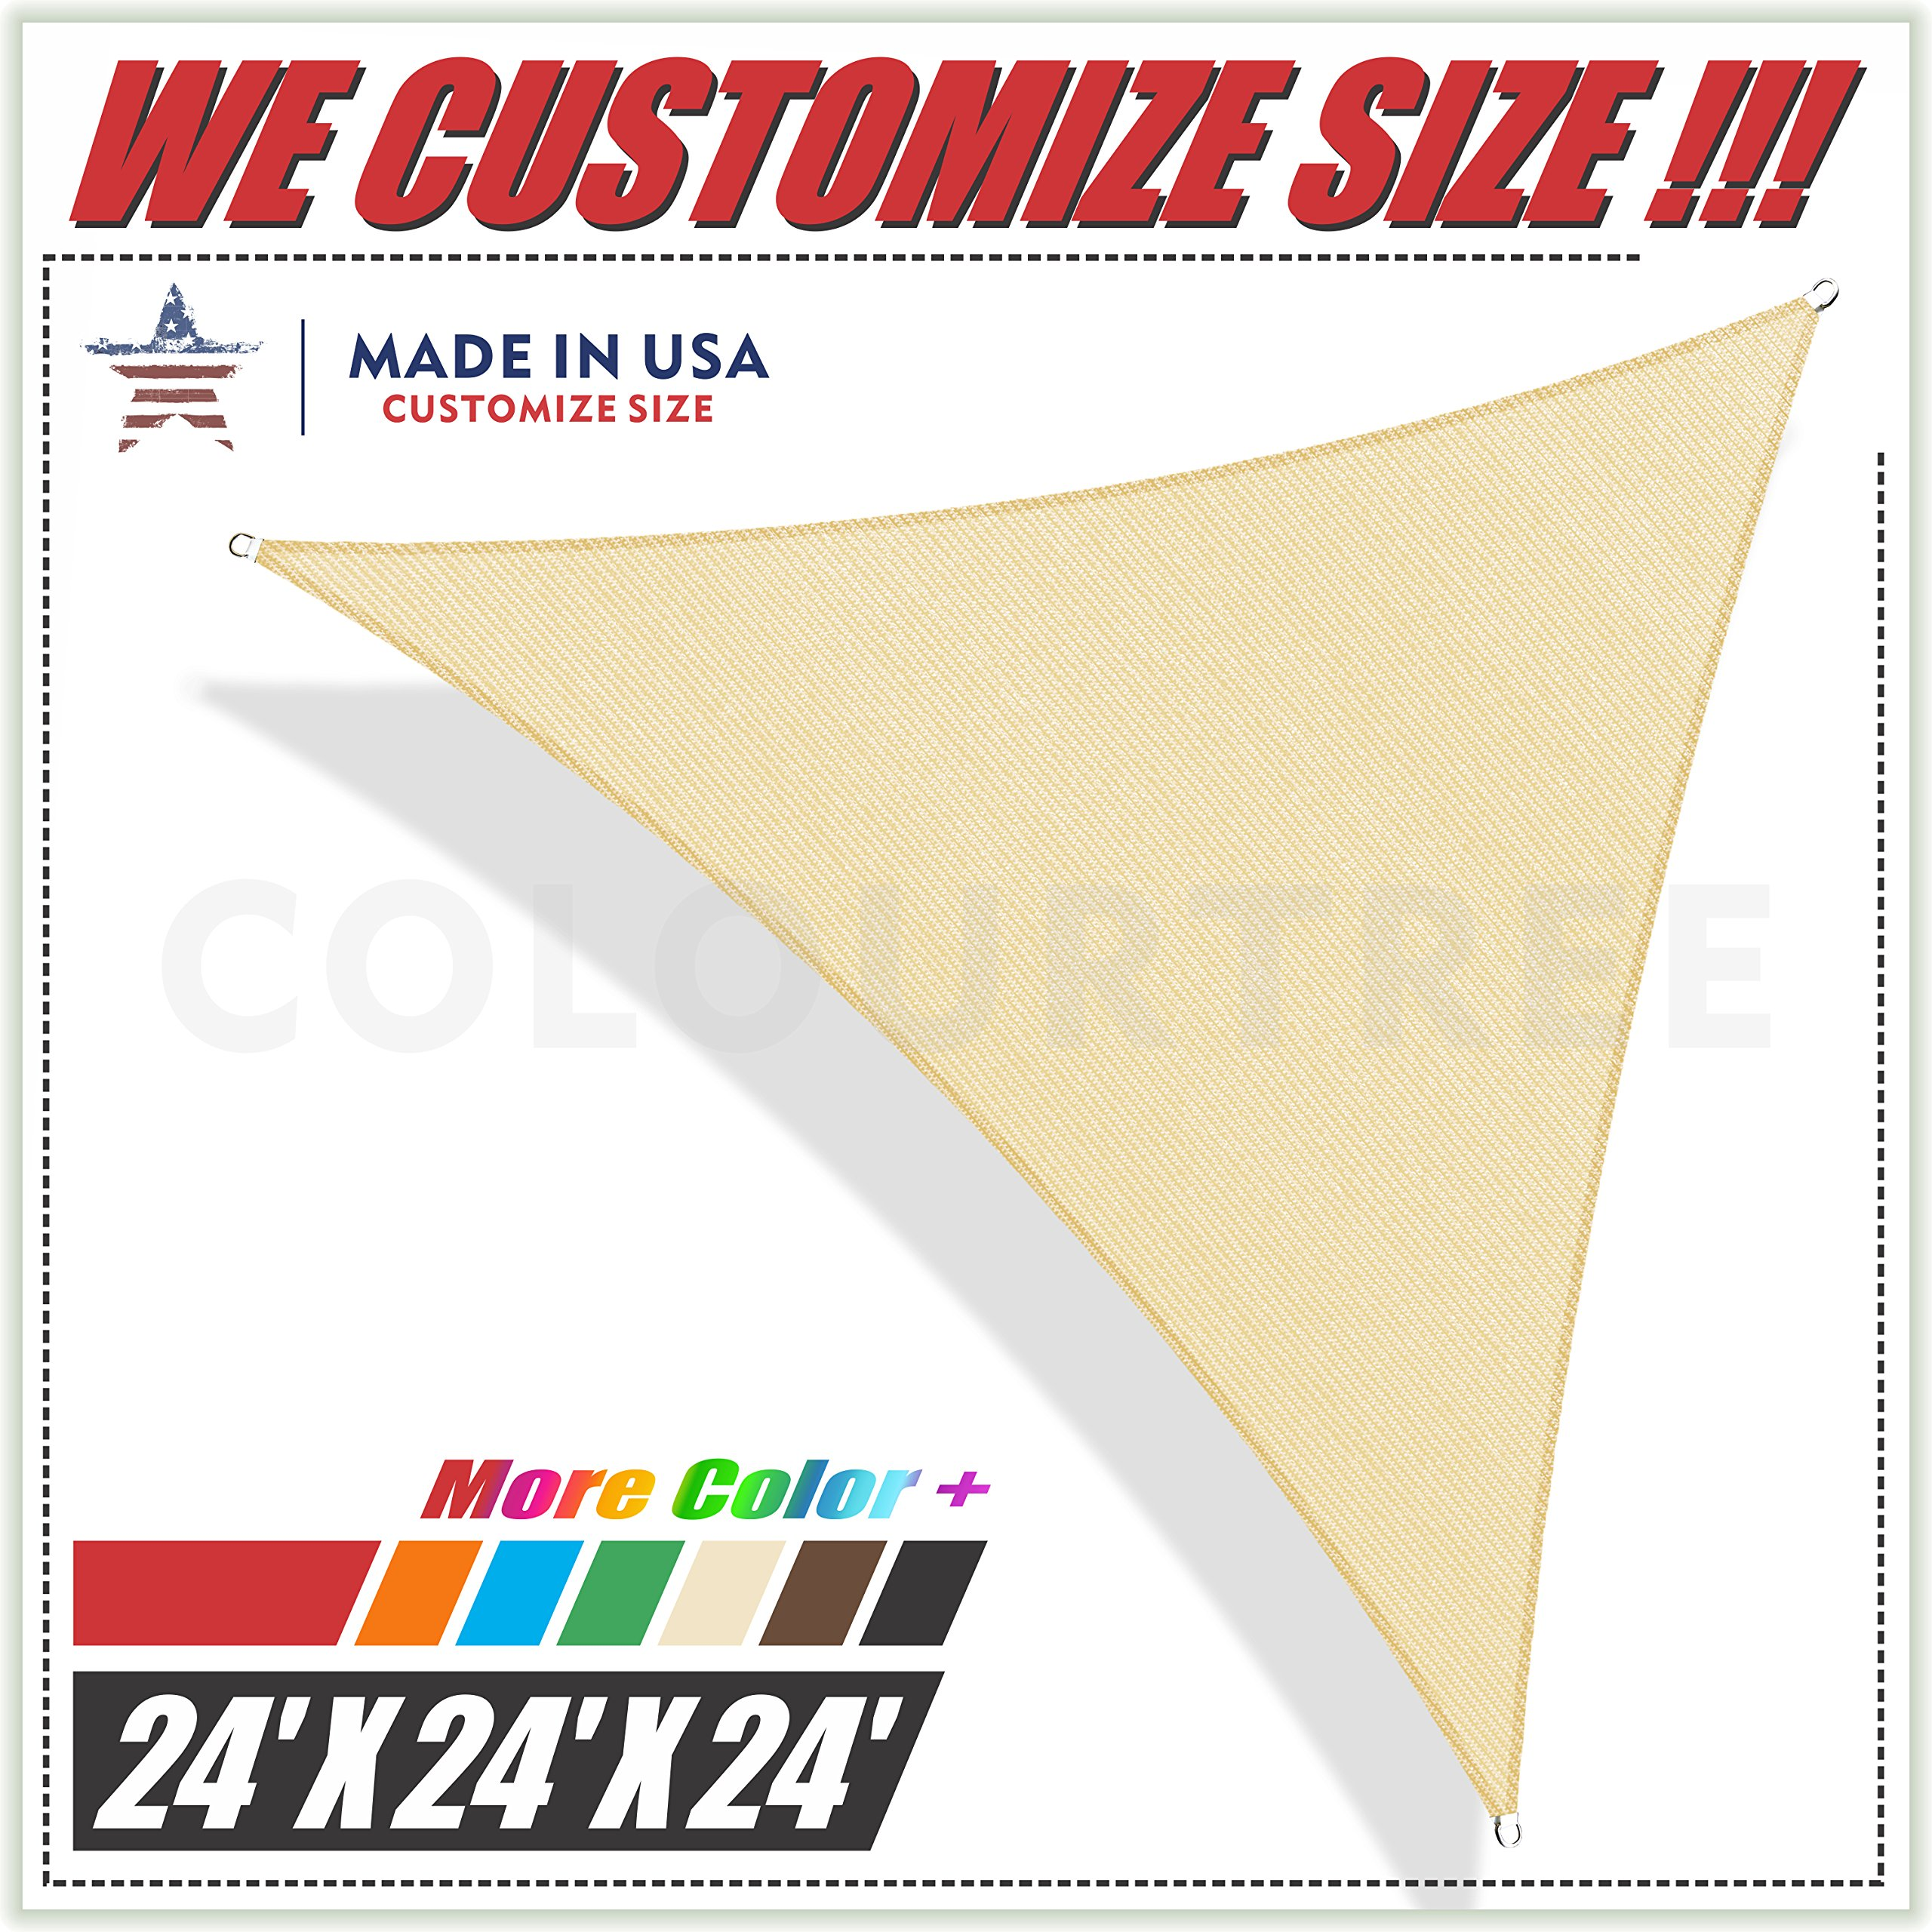 ColourTree 24' x 24' x 24' Beige Sun Shade Sail Triangle Canopy, UV Resistant Heavy Duty Commercial Grade, We Make Custom Size by ColourTree